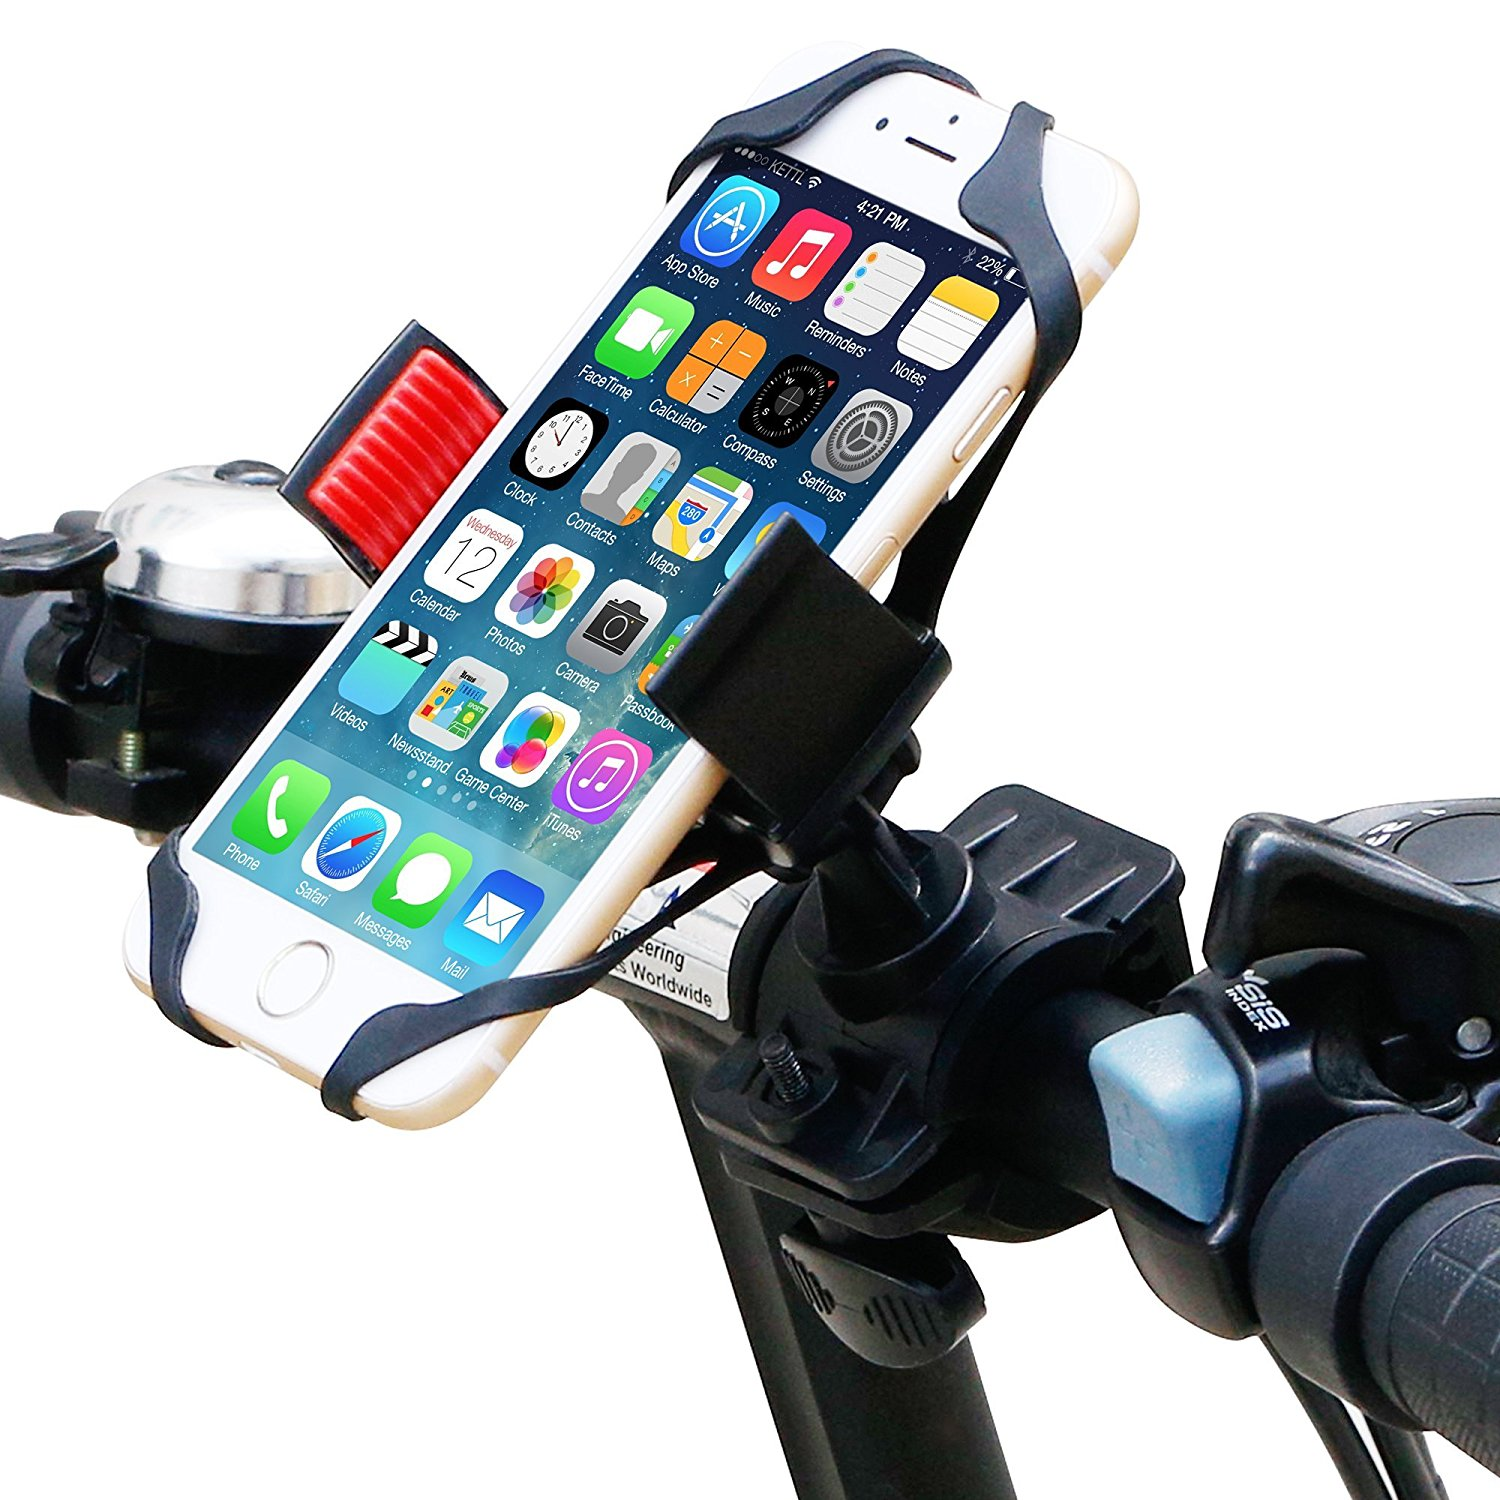 huge selection of acc3b 217e0 Bike Mount, Ipow Universal Cell Phone Bicycle Handlebar & Motorcycle Holder  Cradle for iPhone 6 6(+) 6S 6S plus 5S 5C 4S, Samsung Galaxy S5 S4 S3 Note  ...